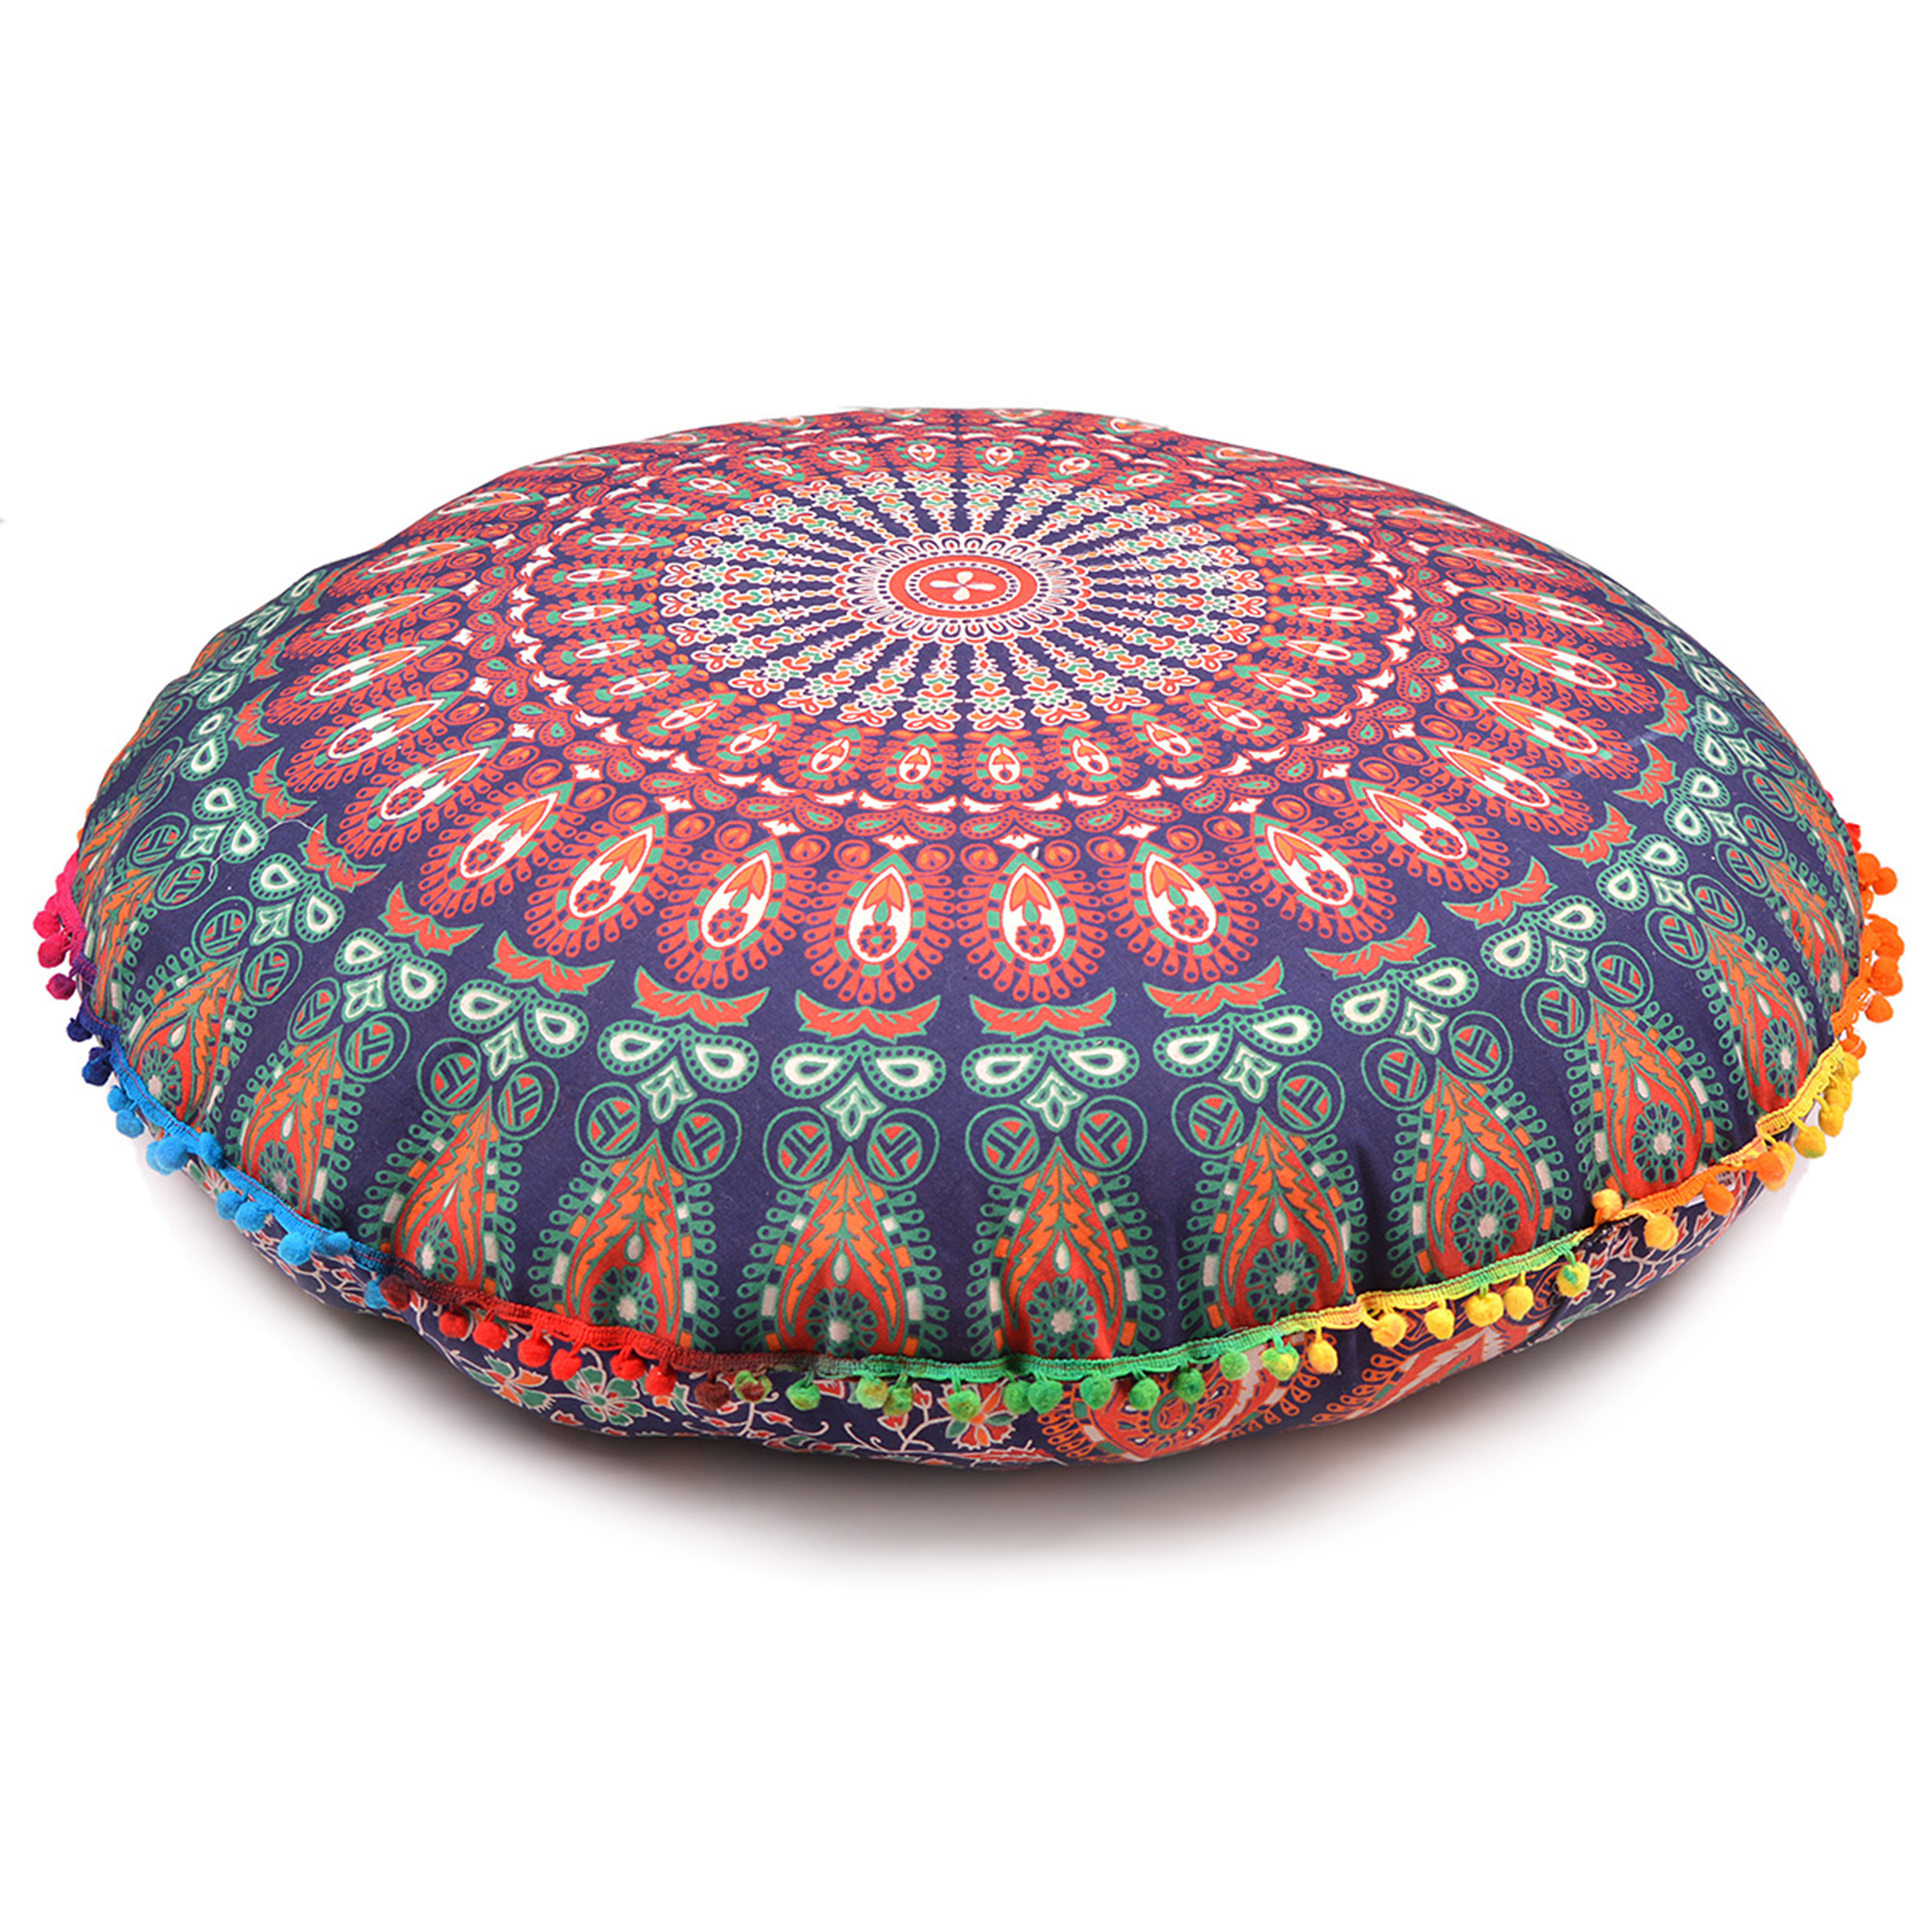 Blue Floor Cushion Covers Mandala Pillow Cover Cases Round Patio Throws Decorative Cushion Covers Size 32""